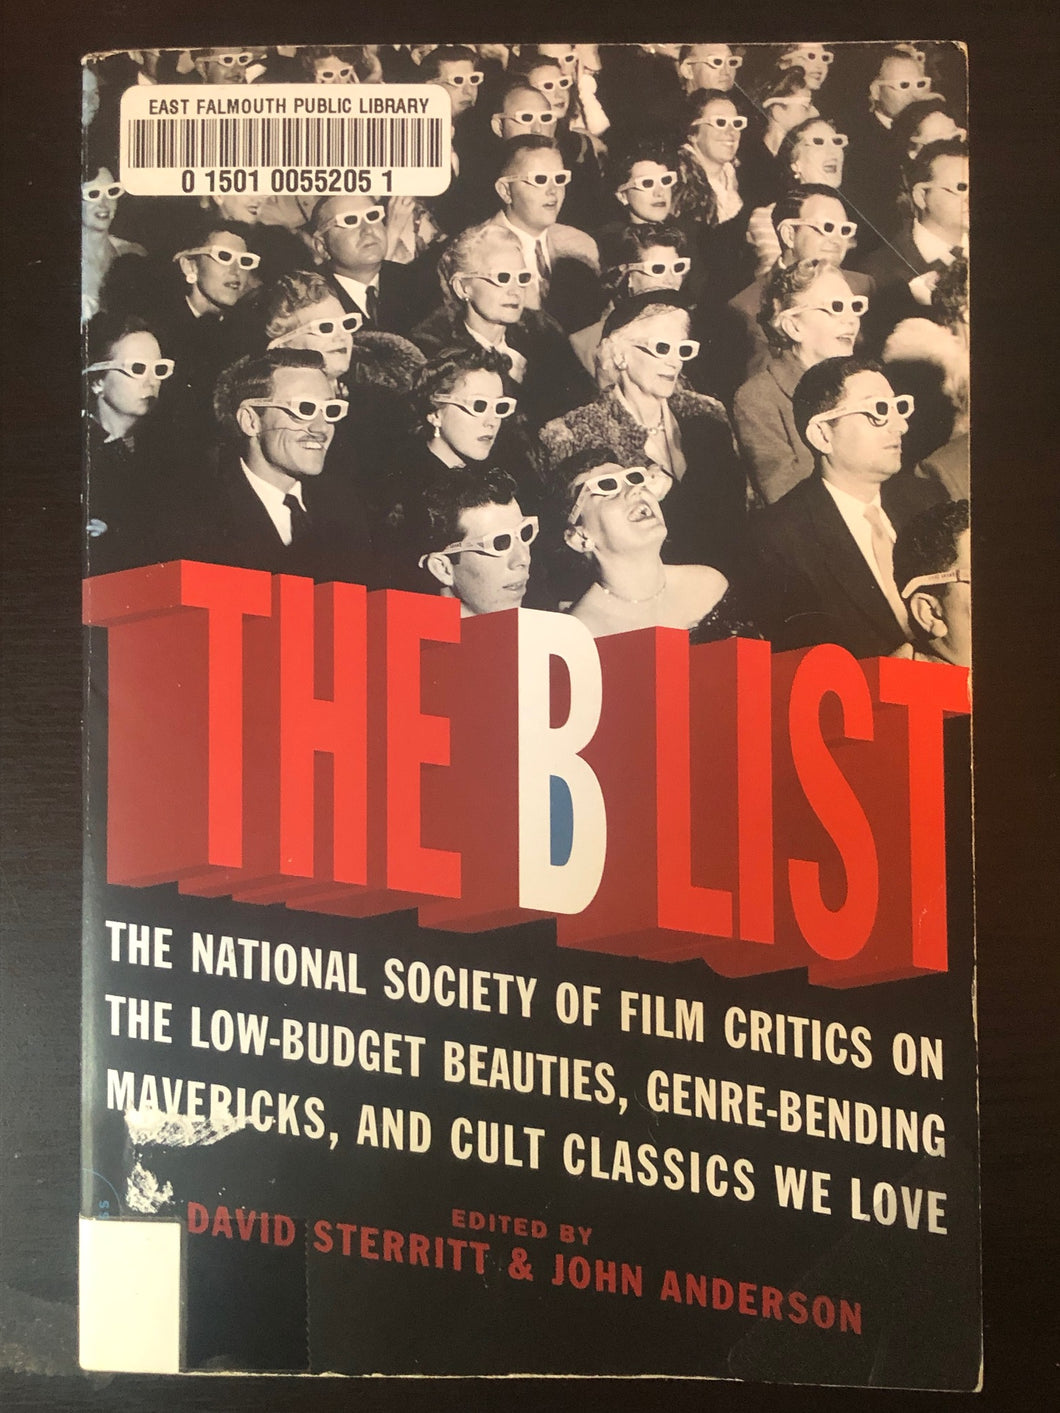 The B List: The National Society of Film Critics on the Low-Budget Beauties, Genre-Bending Mavericks, and Cult Classics We Love (Paperback, SIGNED)